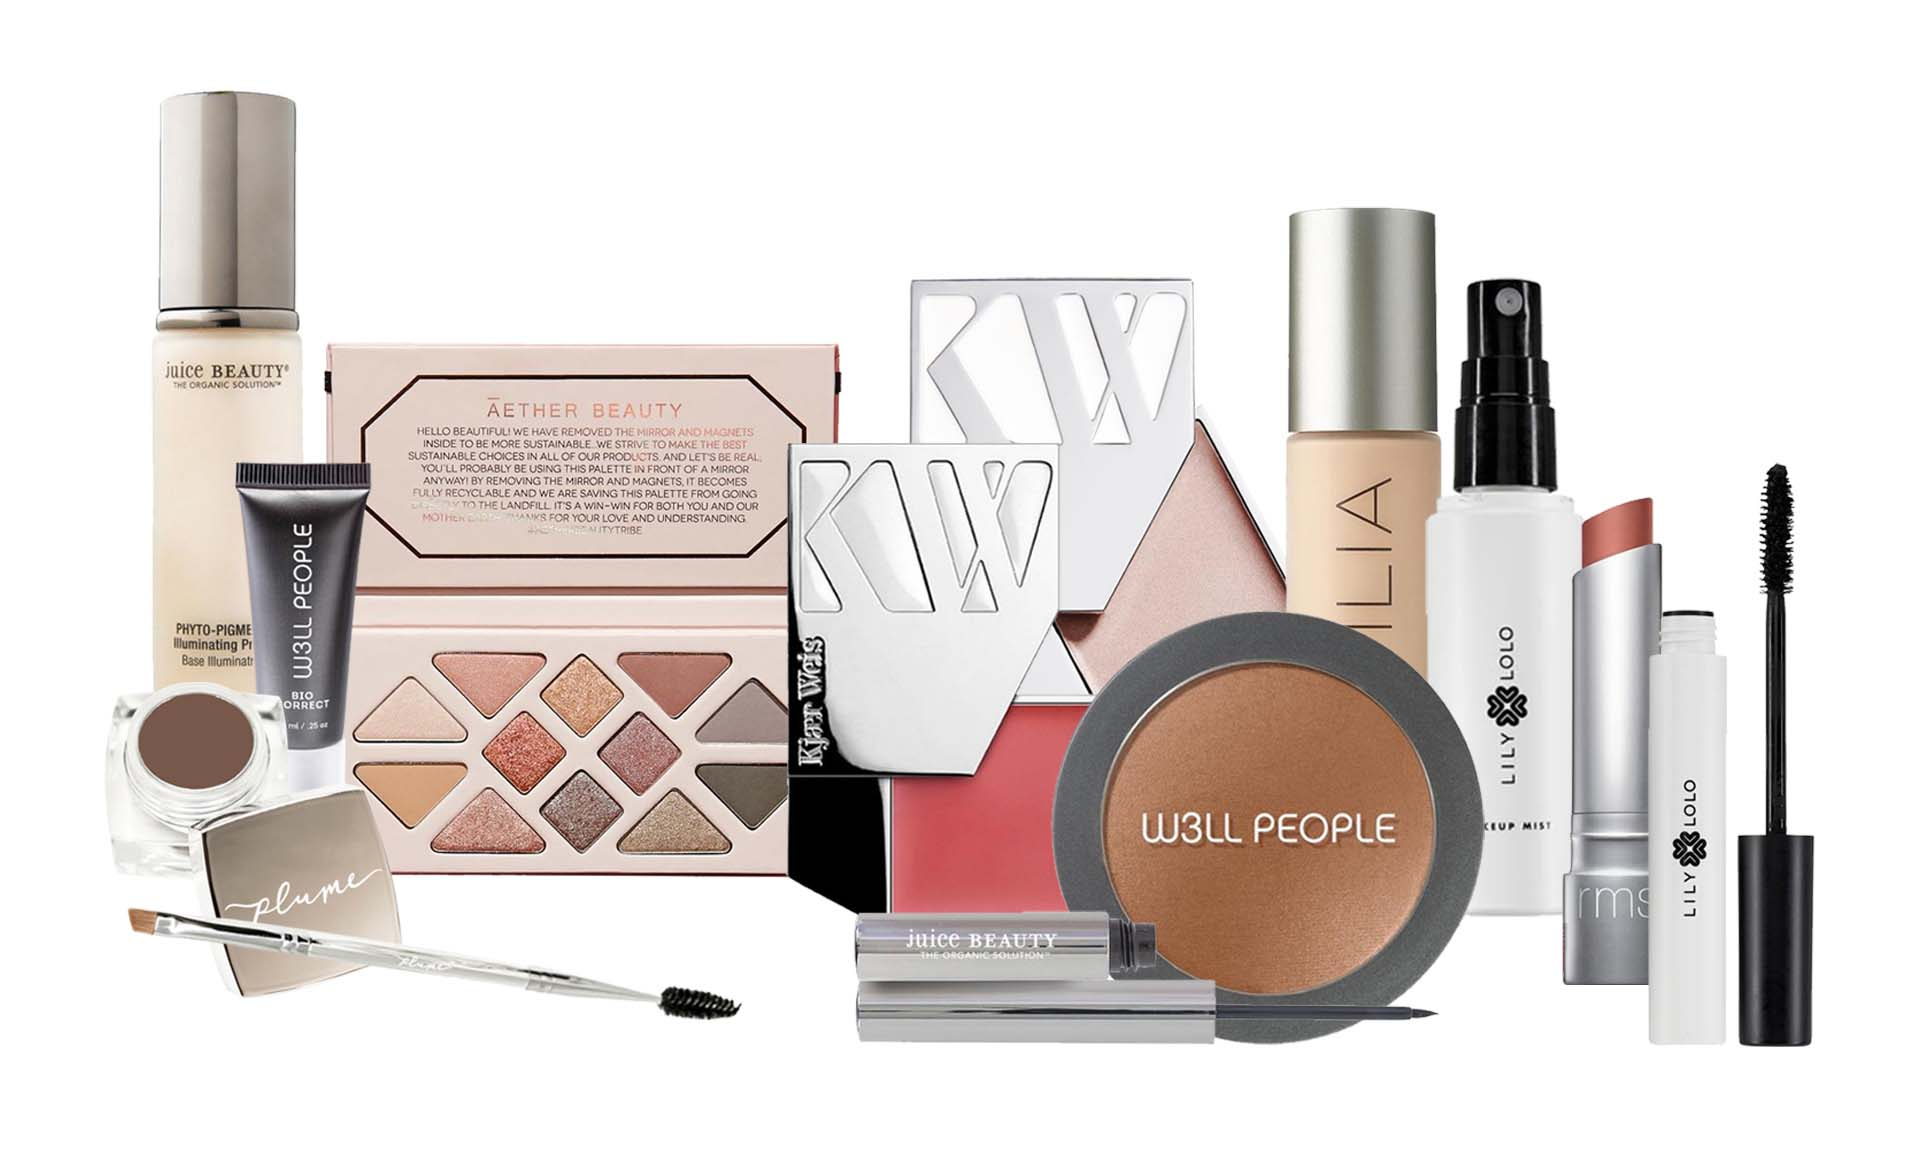 <font color= #418993>Here's your Glam look</font> 1